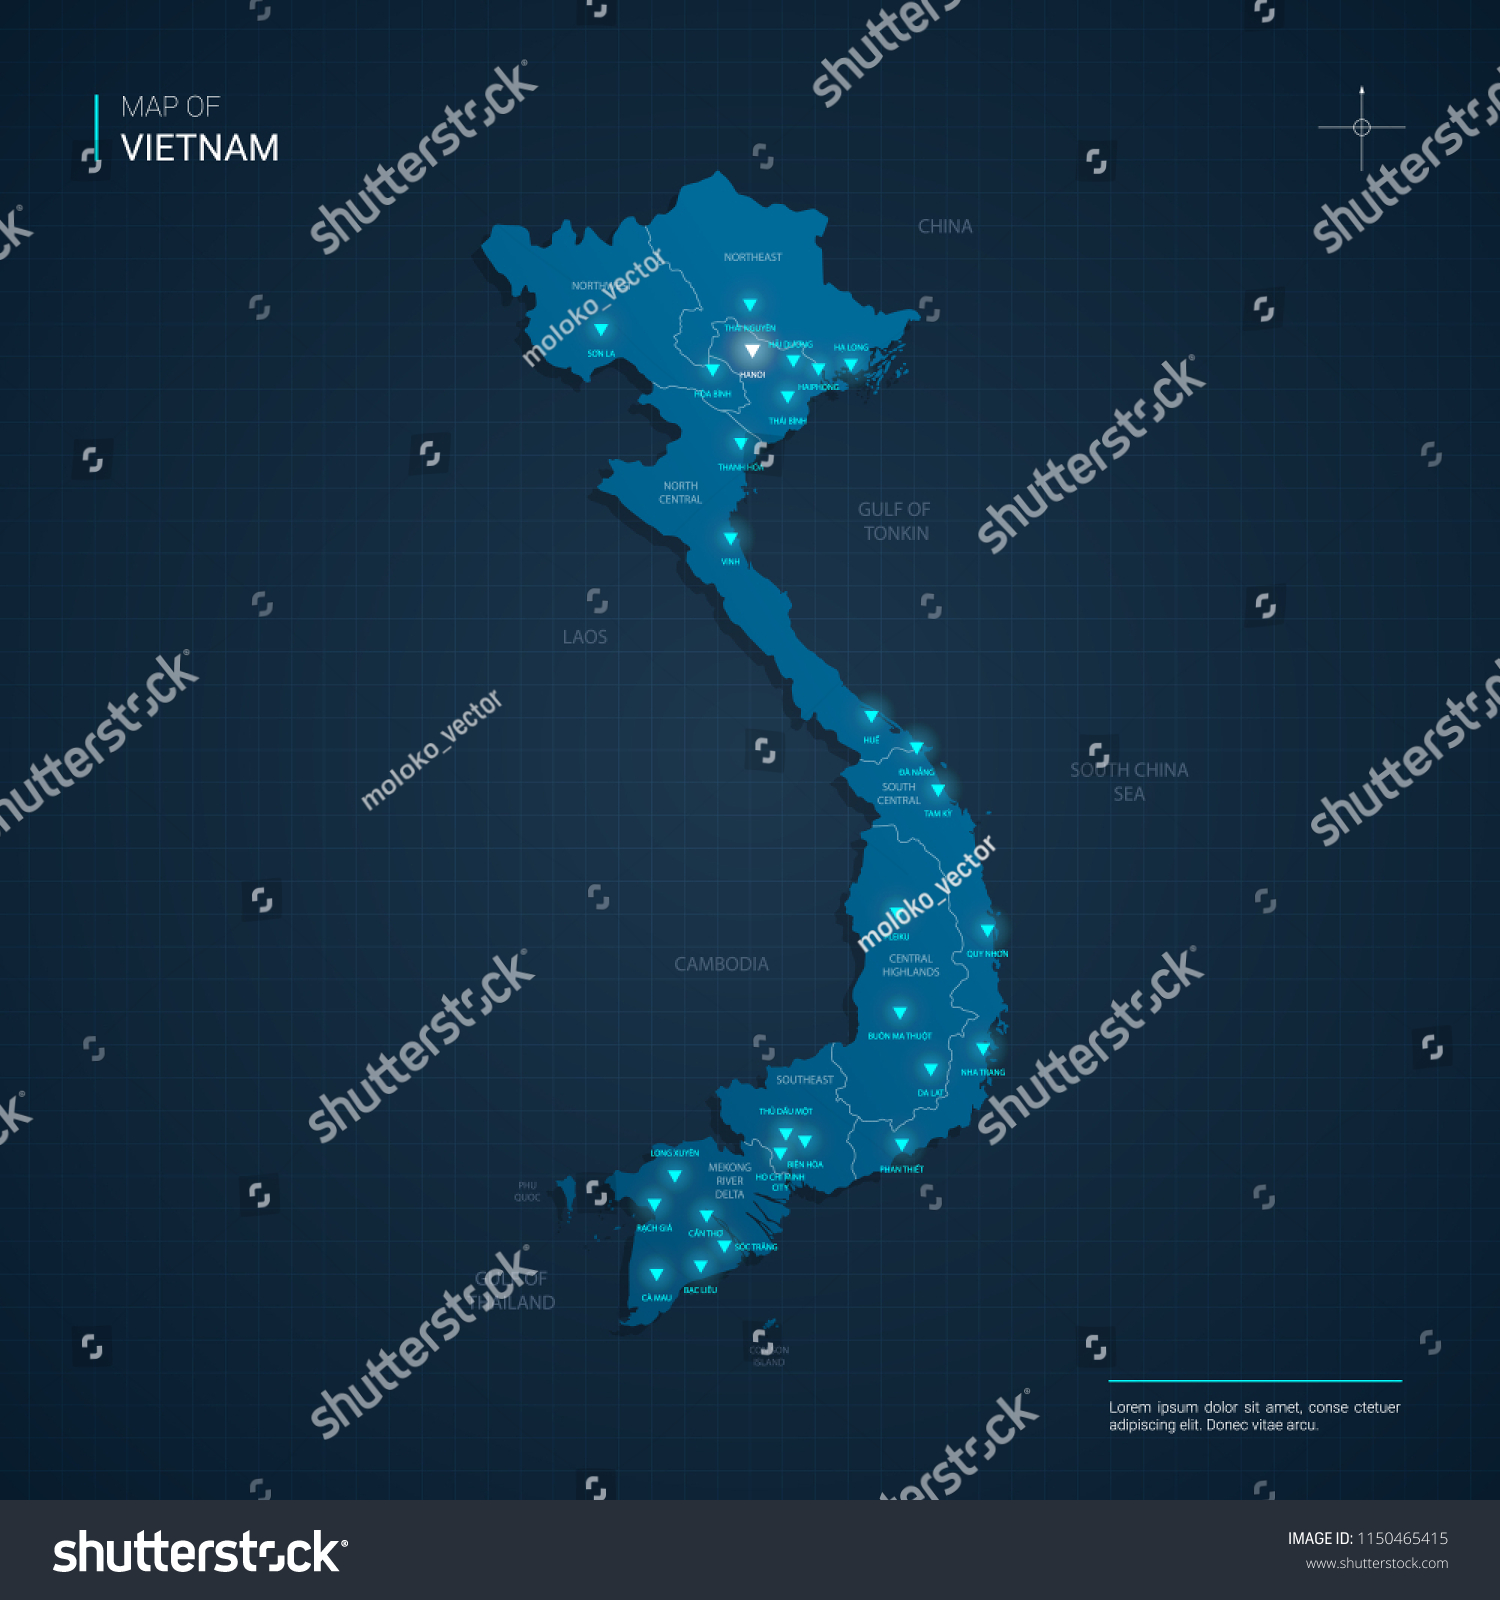 Vector Vietnam Map Illustration Blue Neon Stock Vector Royalty Free